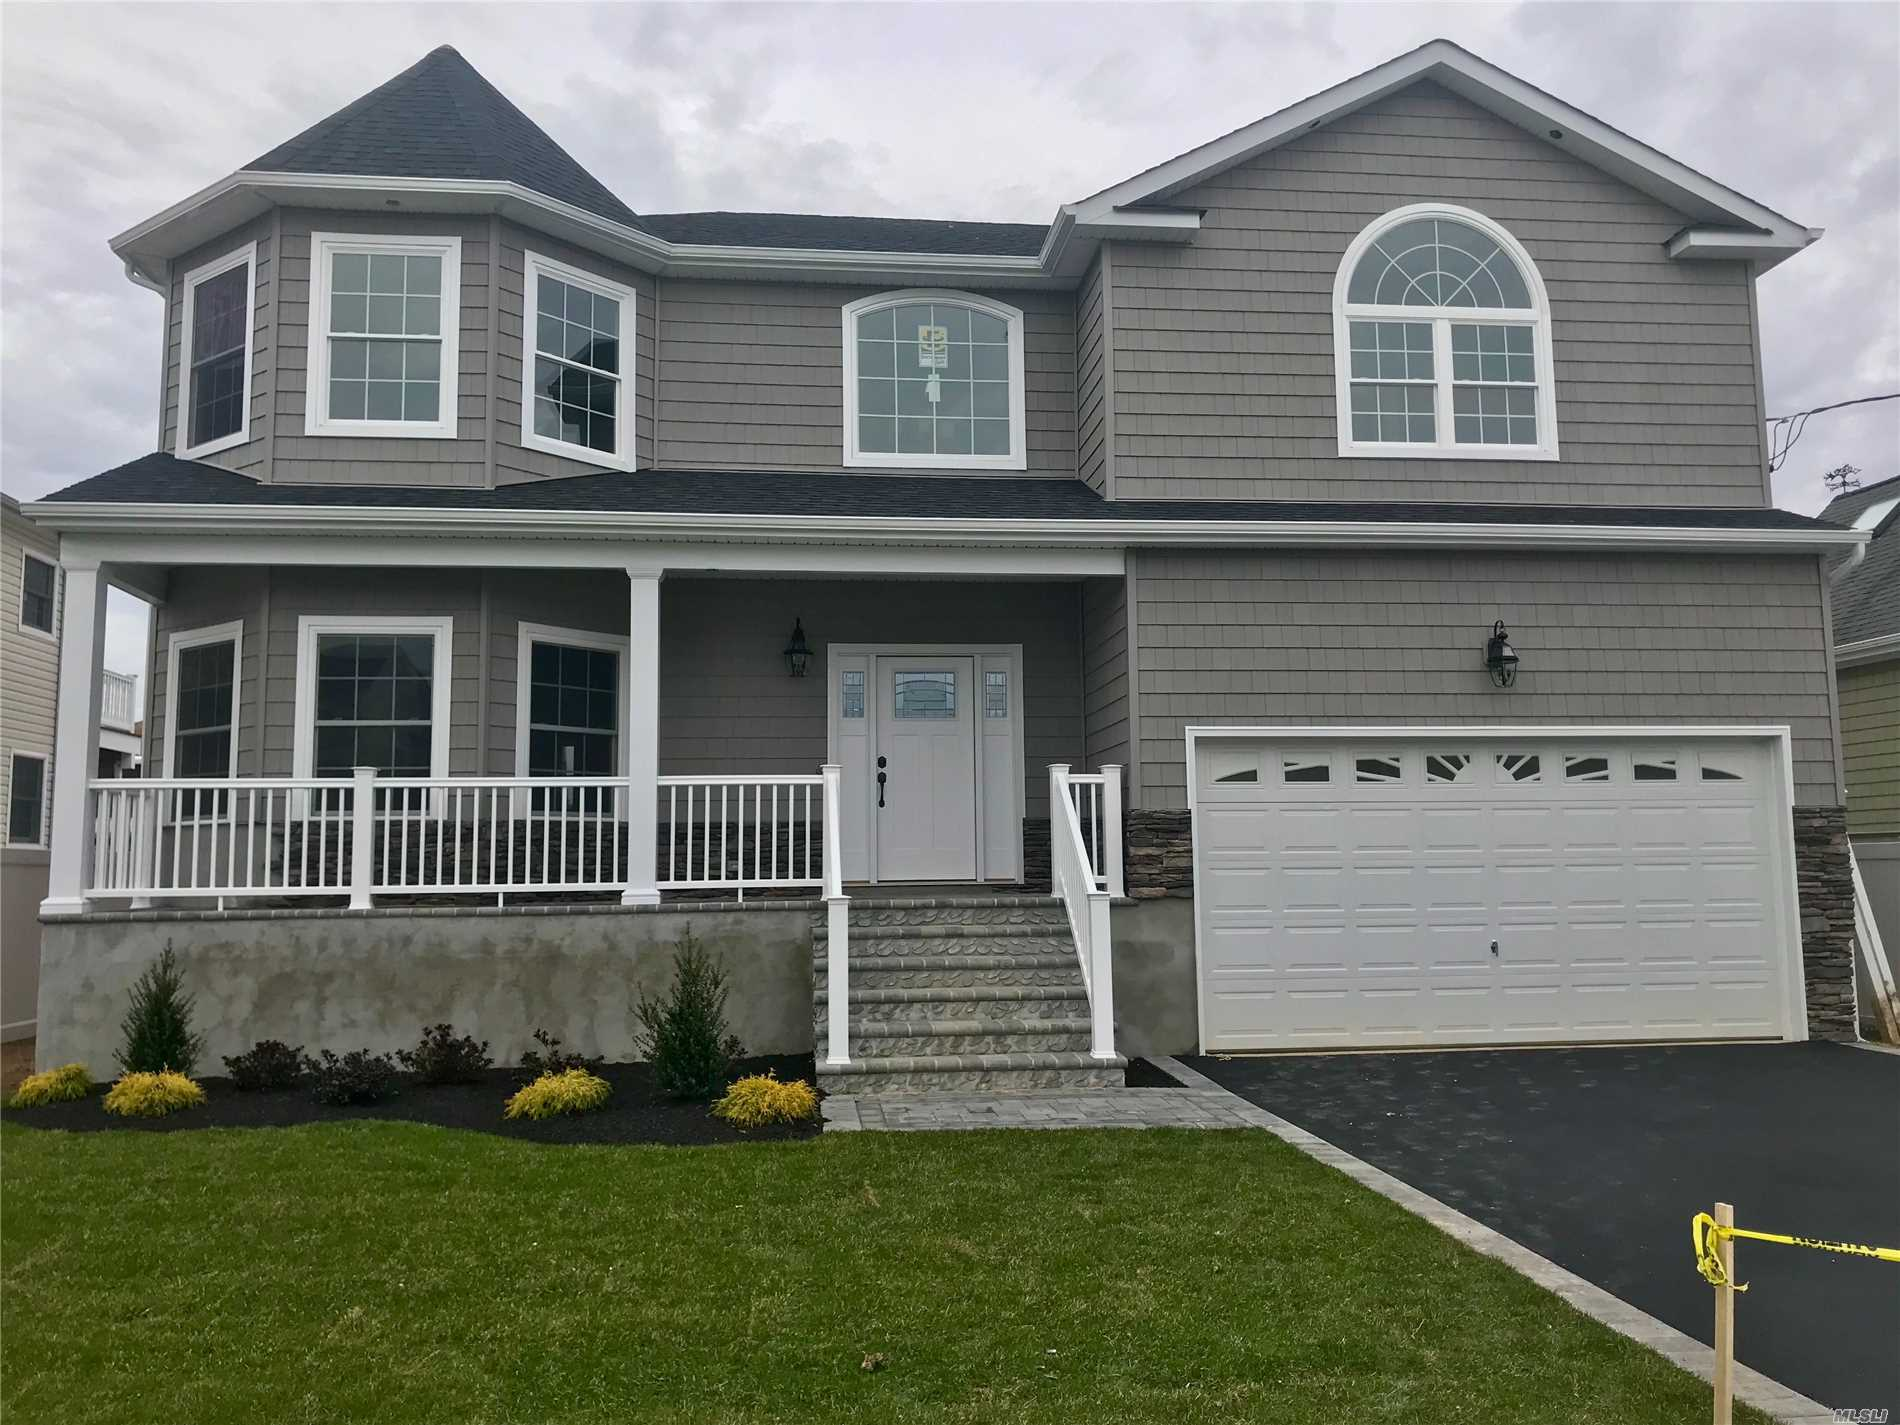 Stunning New Colonial Waterfront Construction.Seconds To Open Bay.Large Open Concept.9Ft Ceilings, Custom Designed Eik W/7Ft Granite Island, Sliders To Backyard W/New Bulkhead, Family Room W/Gas Fireplace, Formal L/R, D/R 1/2 Bath-2nd Fl Features: Designer M/B/Suite W/Tray Ceilings, Slider To Balcony W/Water Views, H/H Wic, 3 Lge Addt B/R & Full Bath W/Cathedral Ceiling & Skylight, W/D 2nd Fl, Custom Crown Molding, Cac, Hvac, Igs, Landscape, Pavers, Built High Evevation To Fema *Move Right Into Your Dream Home*